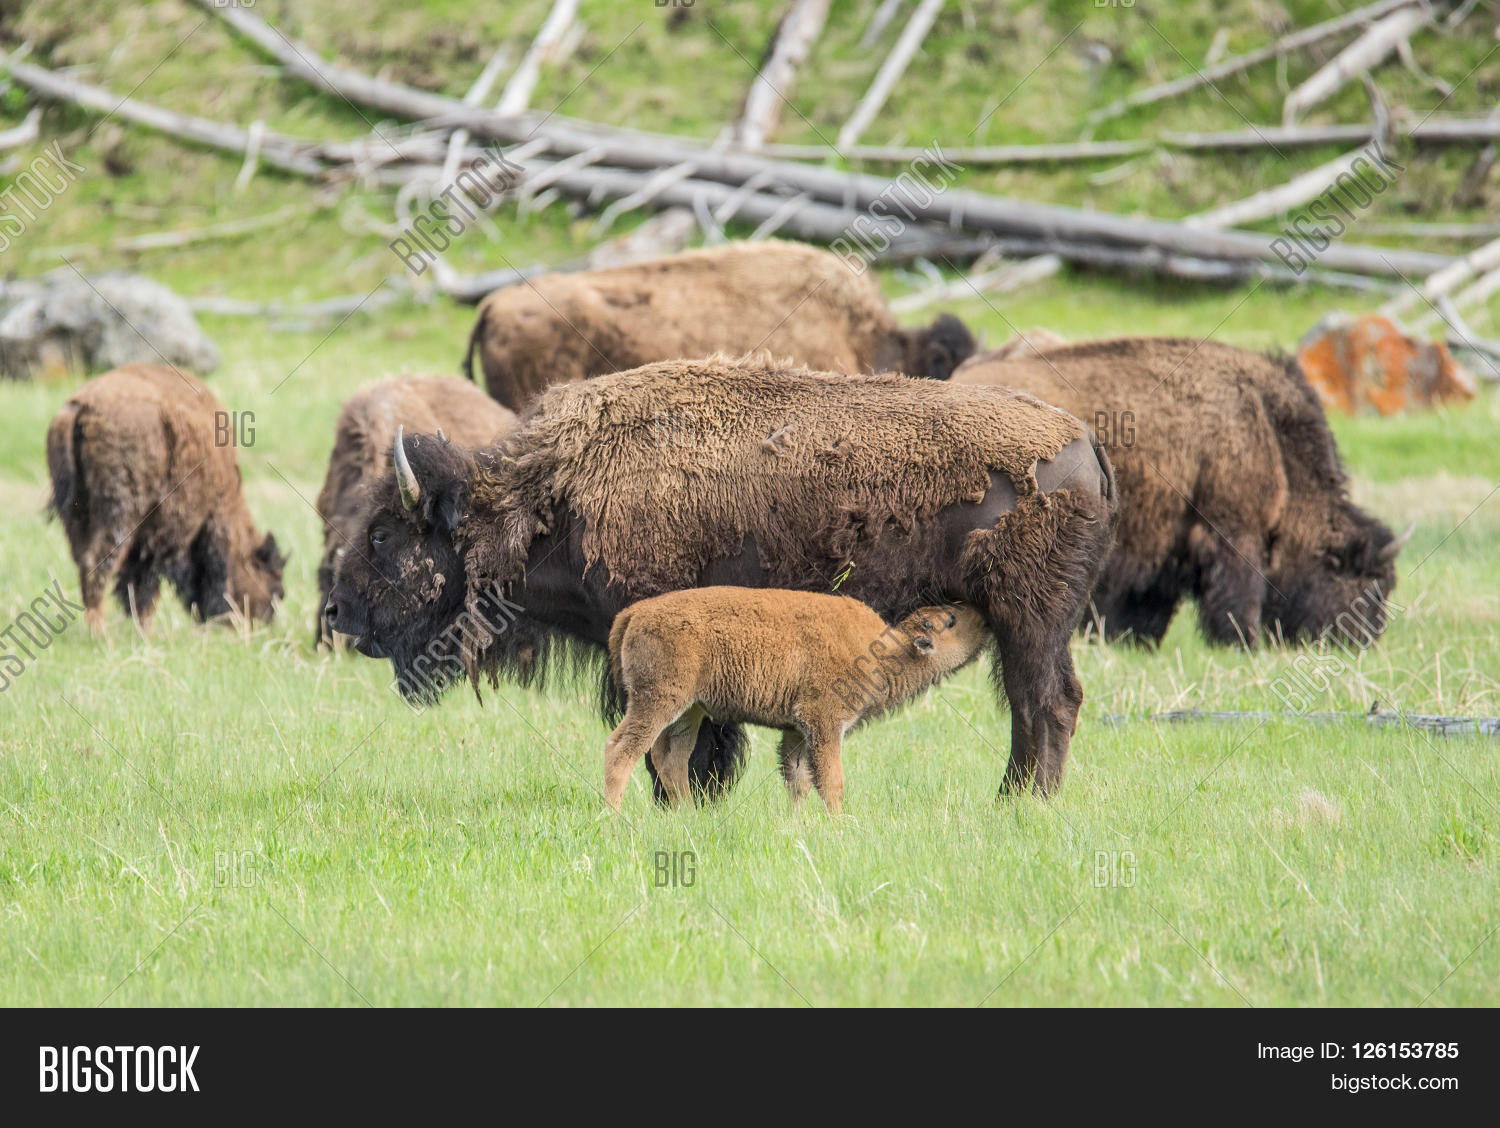 Mother Buffalo Bison Bison Is Nursing Its Baby